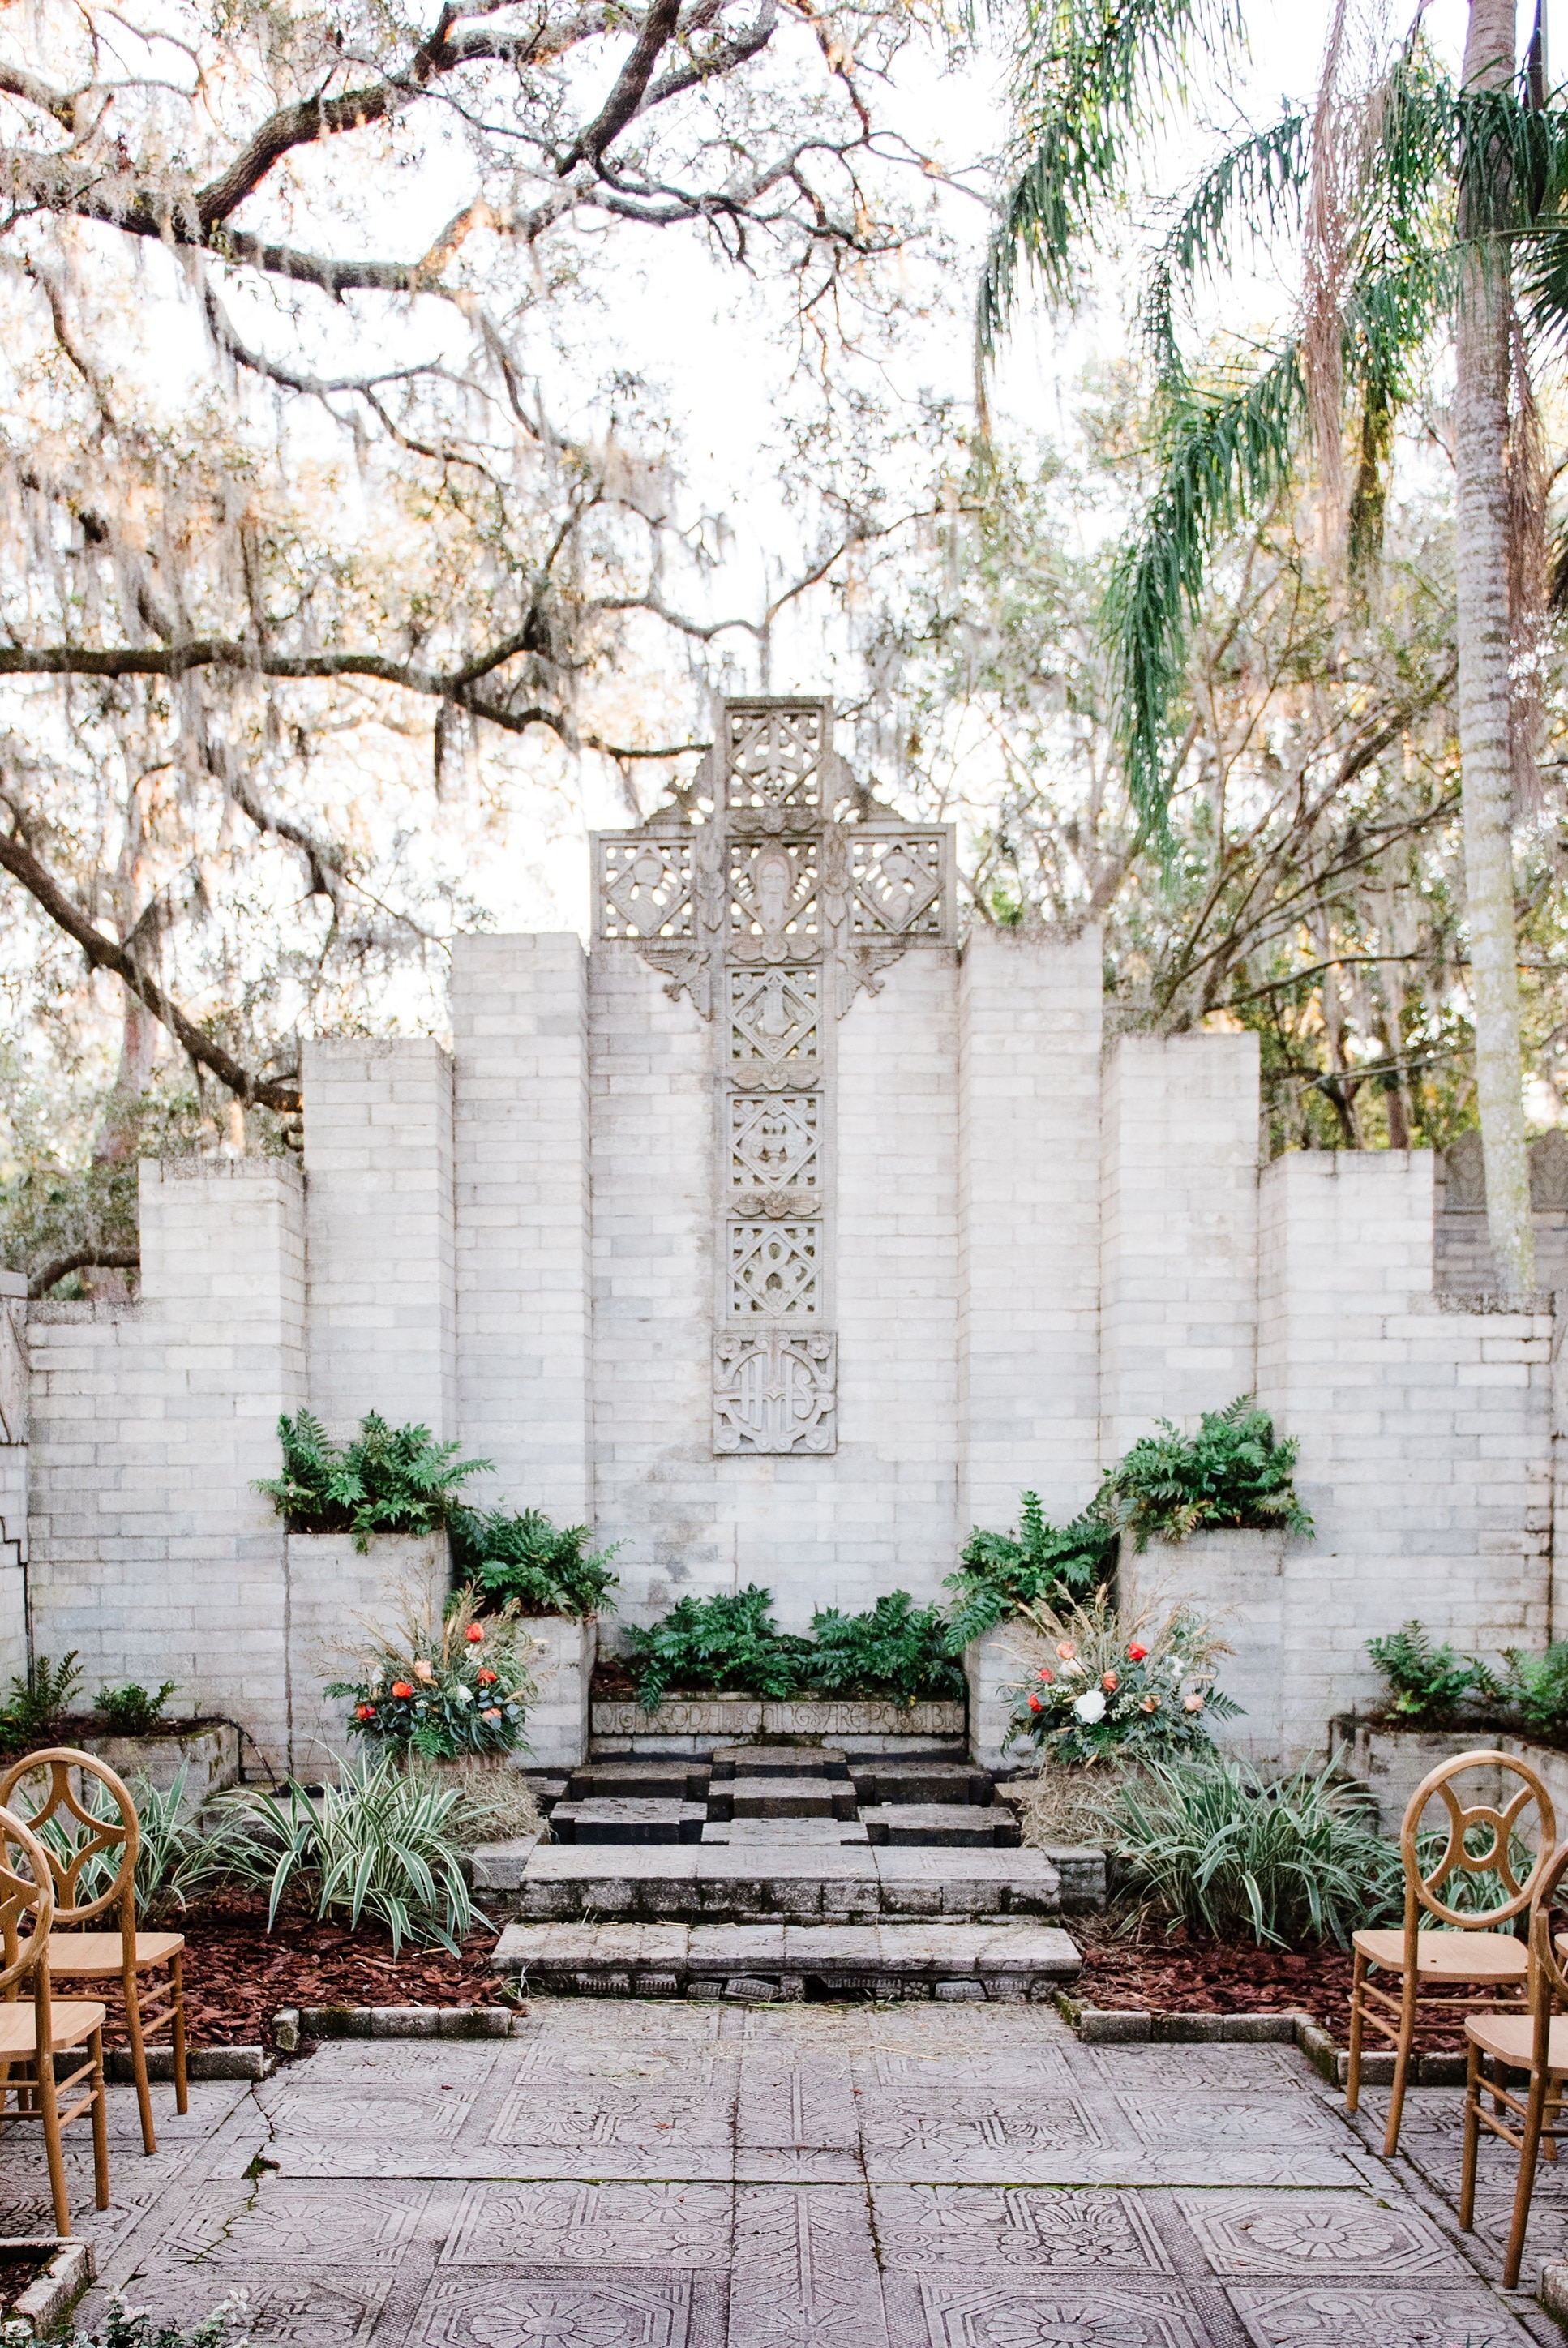 Maitland Art and History Museums - outdoor wedding venue with unique stone backdrop